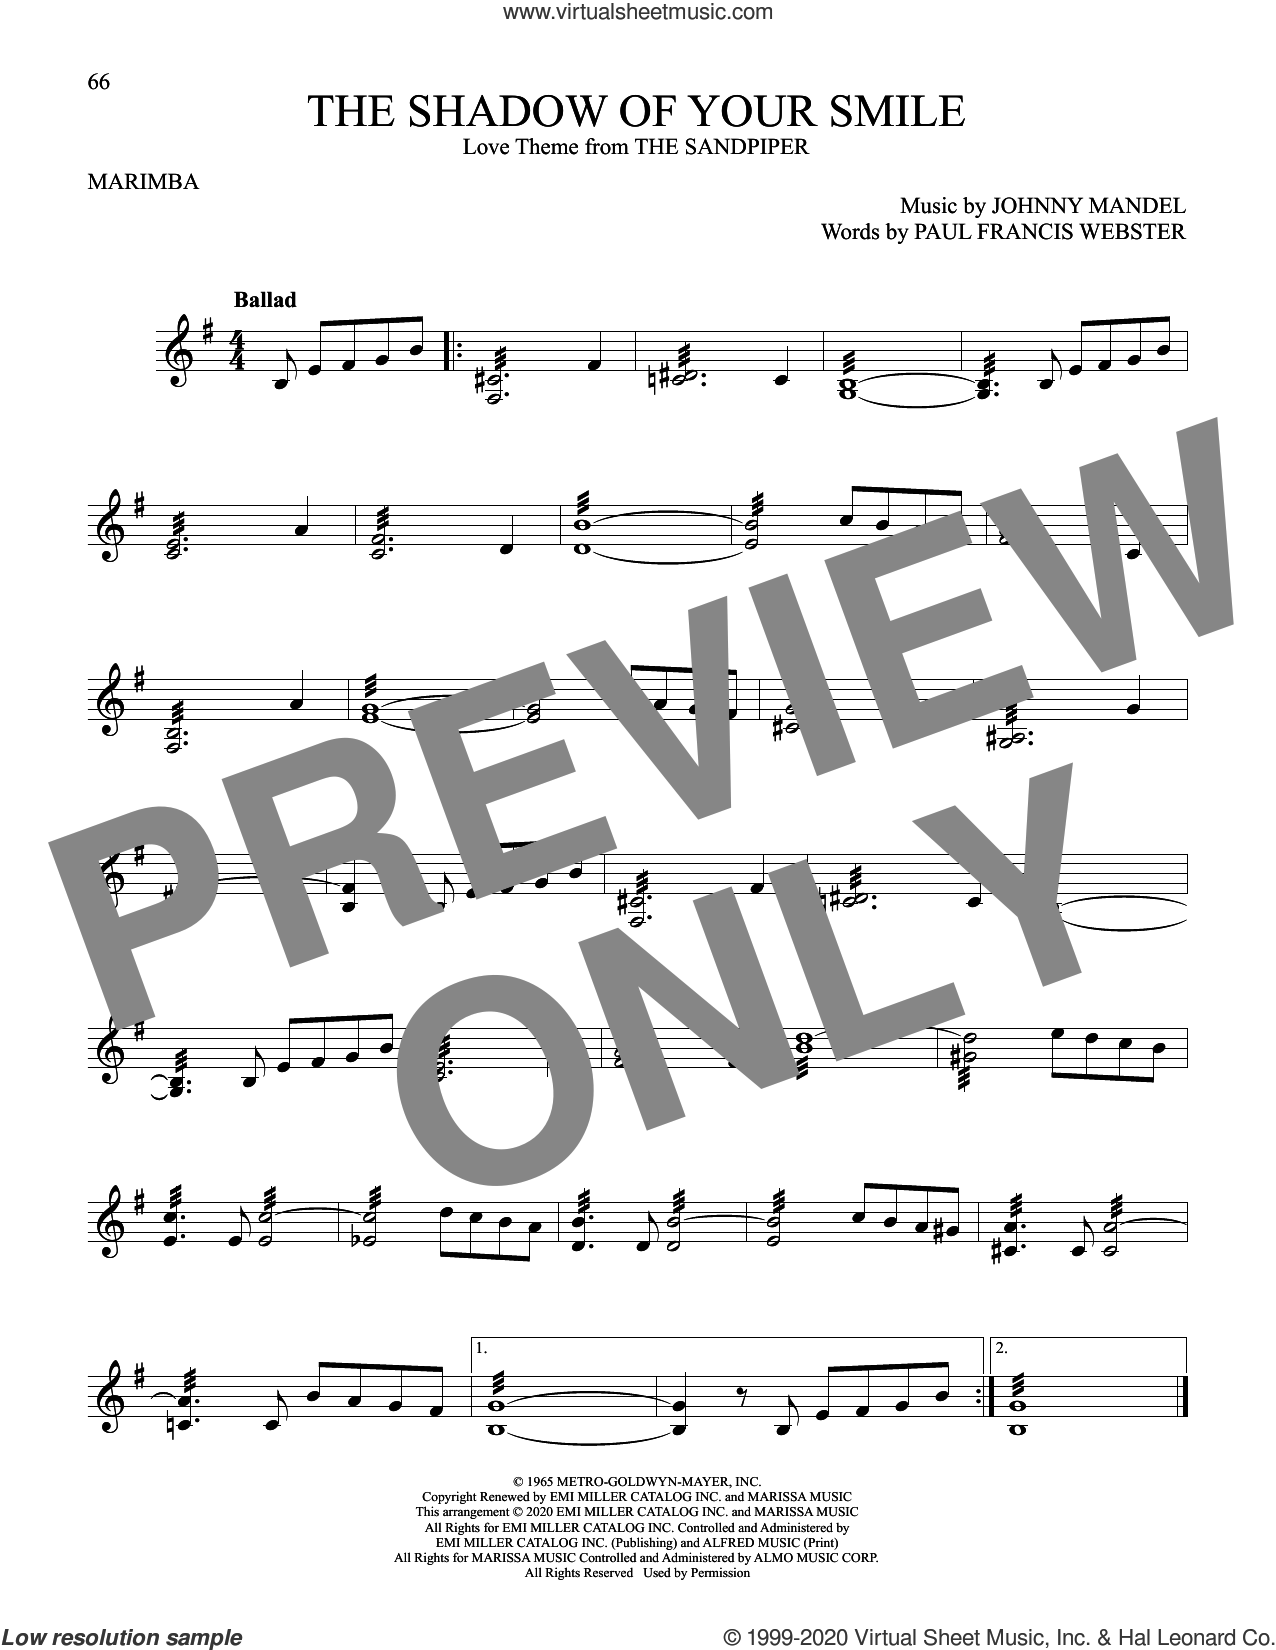 The Shadow Of Your Smile sheet music for Marimba Solo by Paul Francis Webster, Johnny Mandel and Johnny Mandel and Paul Francis Webster, intermediate skill level